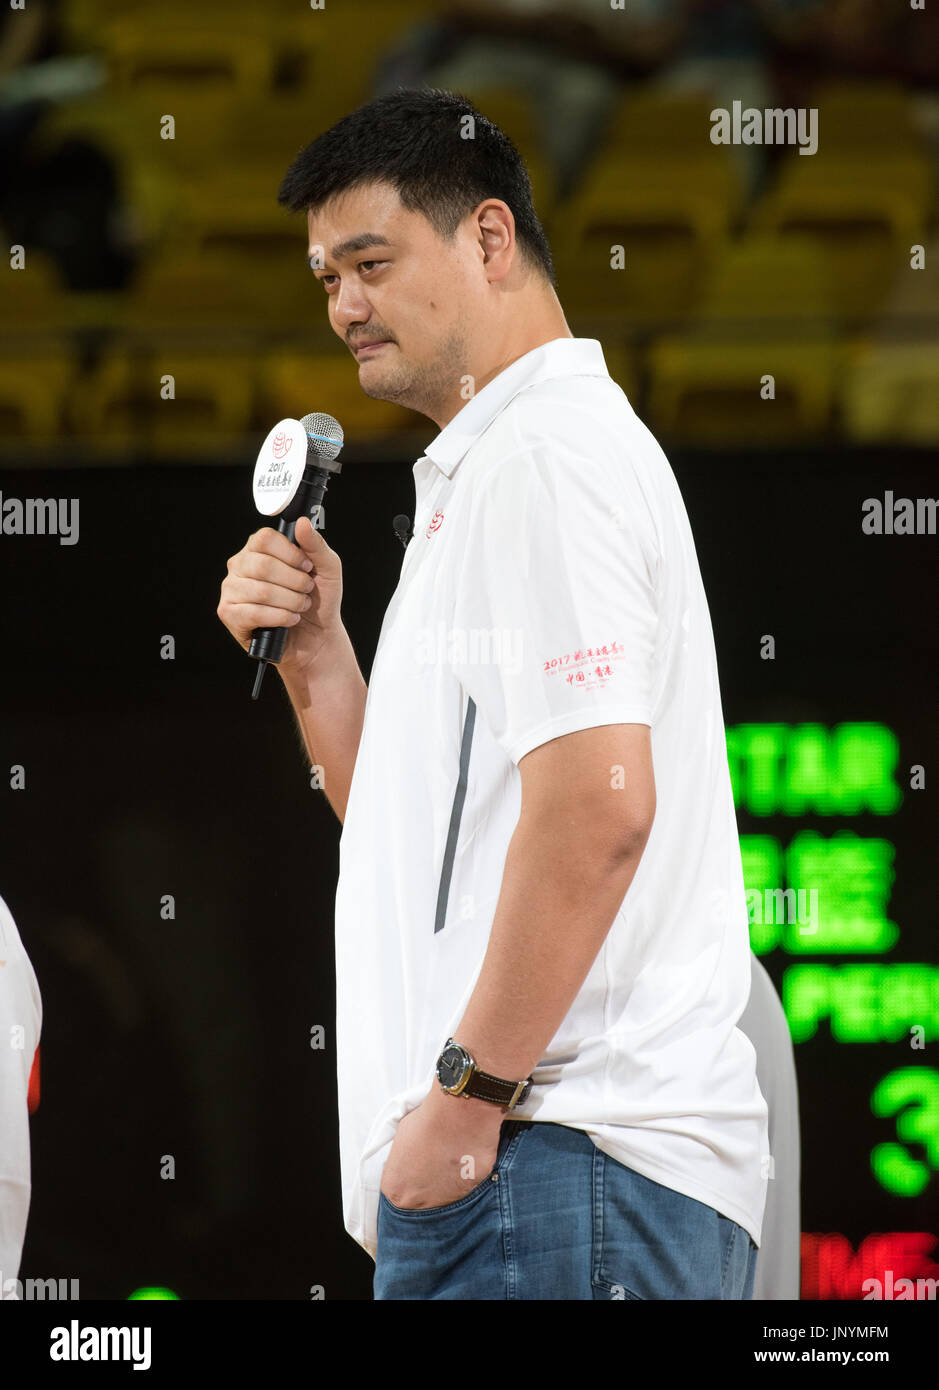 Hong Kong, China. 30th July, 2017. HONG KONG, CHINA - JULY 30: Former NBA player Yao Ming from China.To celebrate the 20th Anniversary of the formation of the Hong Kong Special Administrative Region (HKSAR), the Yao Foundation (started by Chinese basketball player Yao Ming) host a charity match between the American professional Nike rising star team and the Chinese Men's basketball stars team ( Chinese Mens win 66-63. Hong Kong, Hong Kong SAR, China on July 30, 2017. Alamy Live News/Jayne Russell Credit: Jayne Russell/Alamy Live News - Stock Image